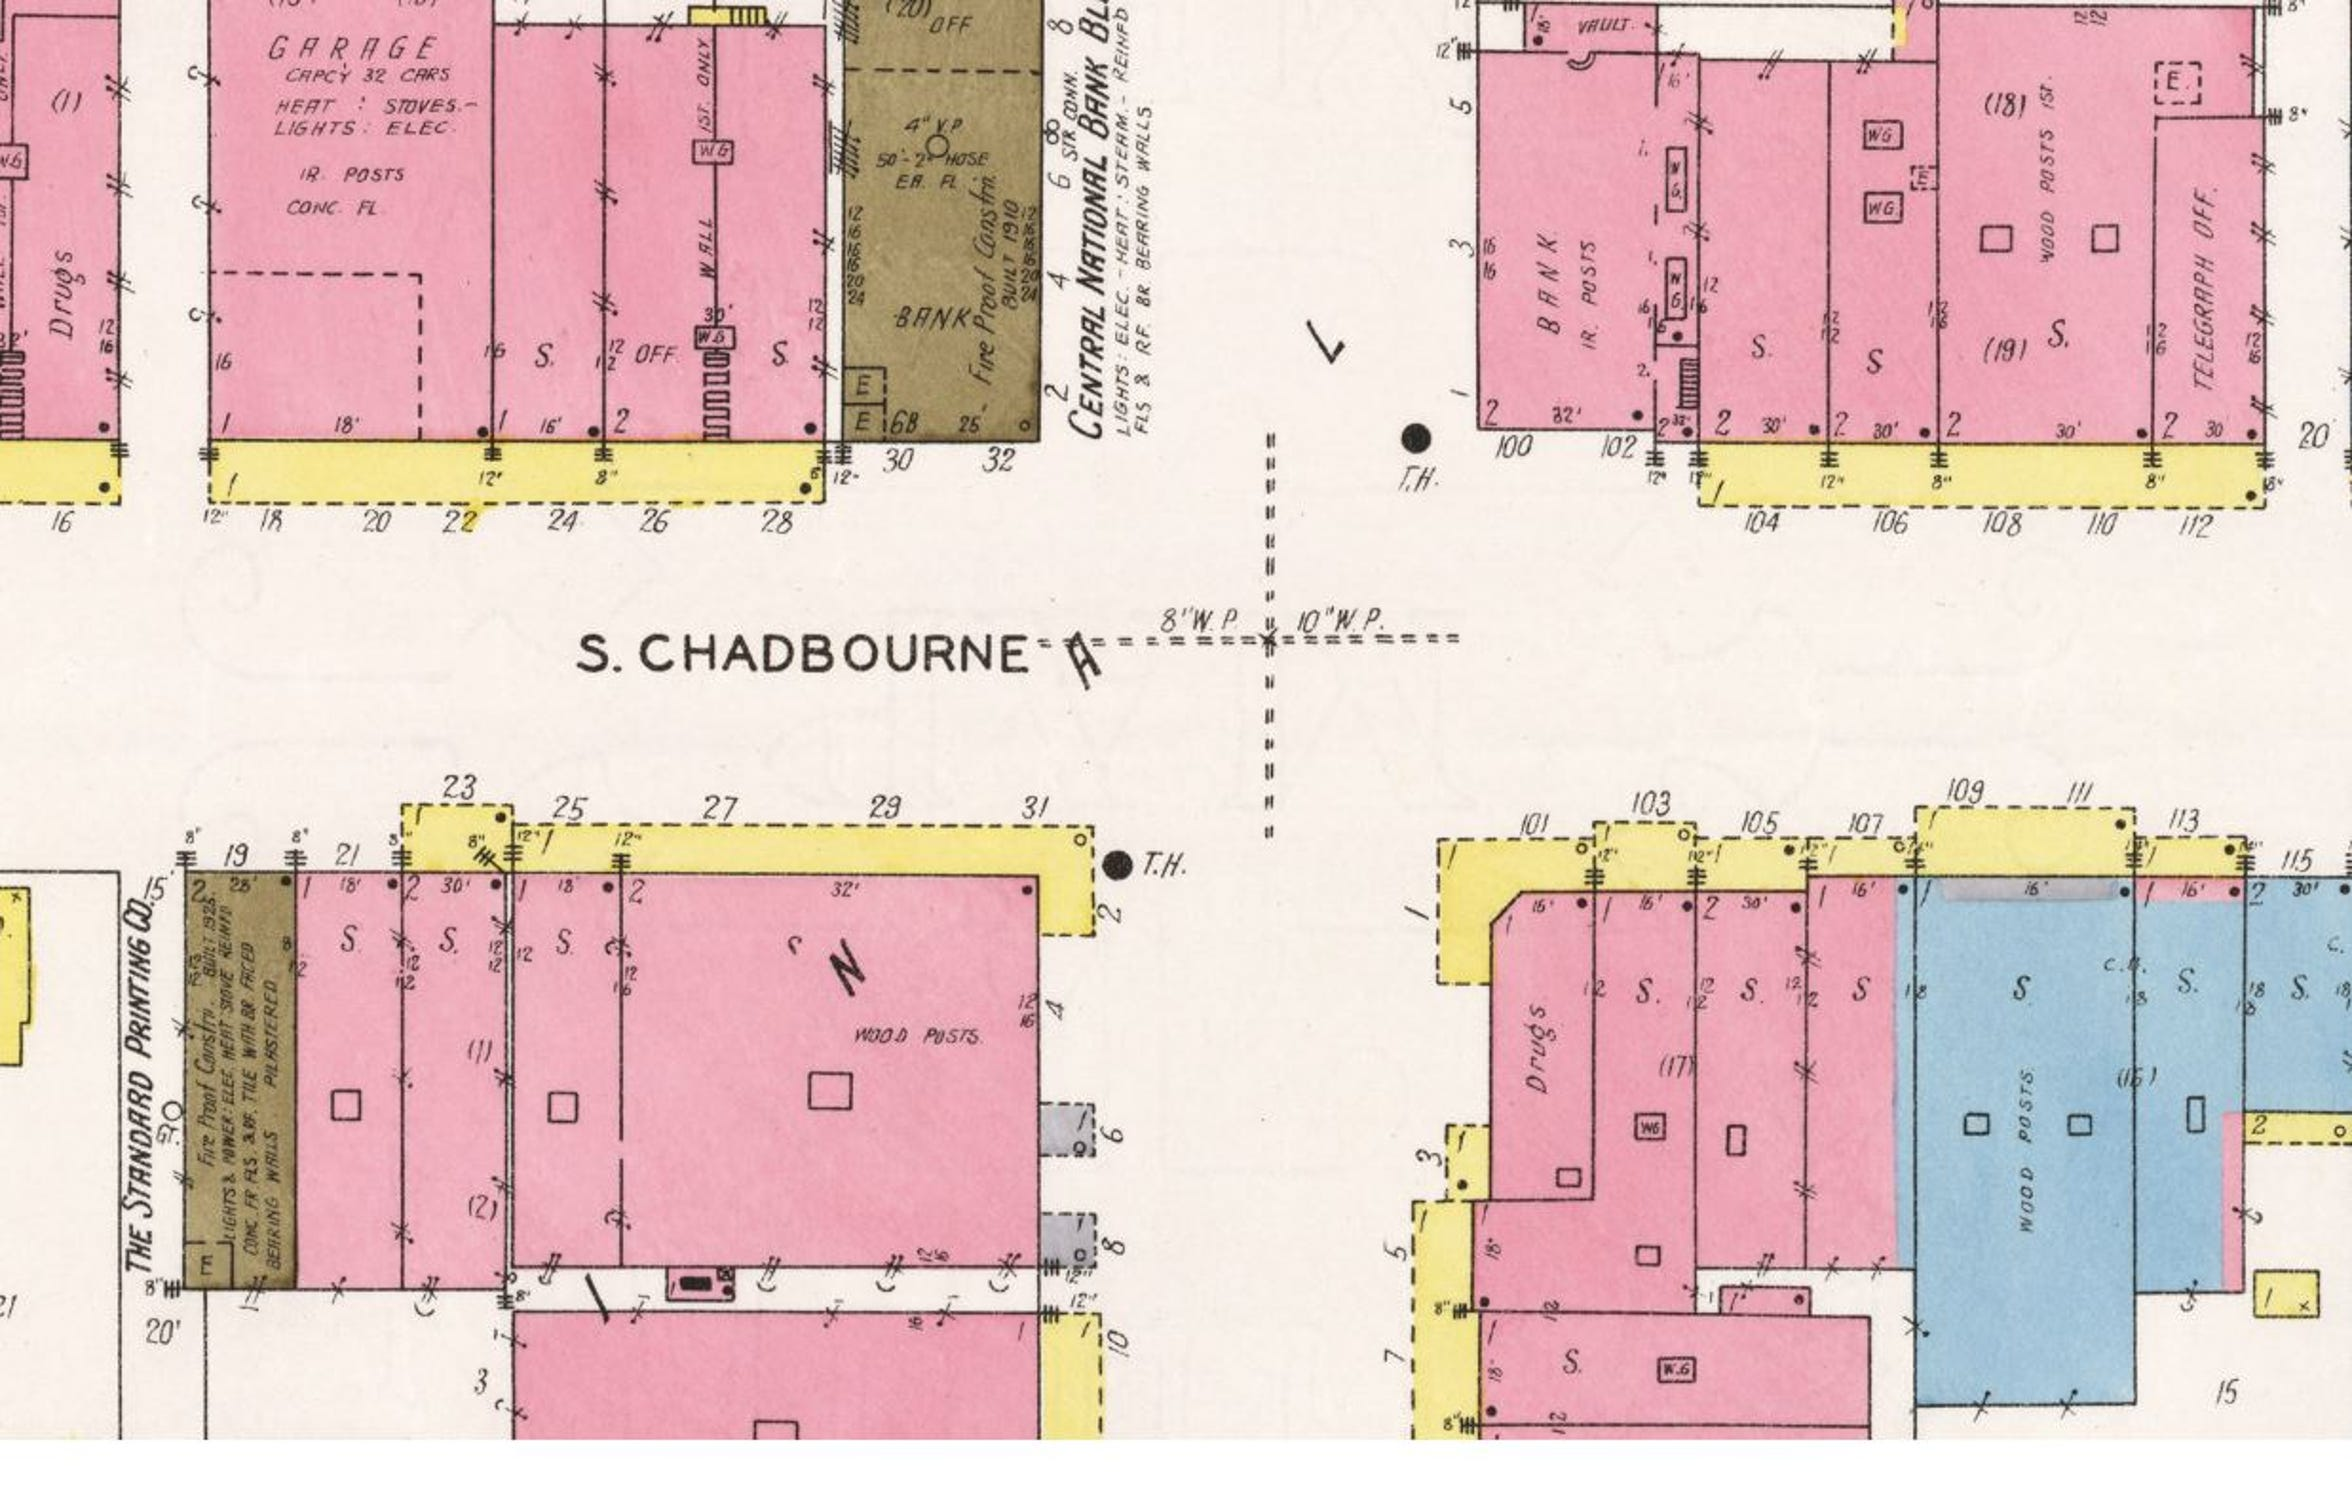 Five years after buying the San Angelo Standard, Houston Harte moved the operation up Chadbourne Street to upgrade day-to-day operations with a more modern facility. The new location, seen in the northwest quadrant of this 1927 Sanborn Fire Map, was home to the newspaper until the new building at 34 W. Harris Ave. was ready for business in 1951. The building was recently listed on the market by the current owners, Gannett Inc., to help the company keep up with current industry conditions.